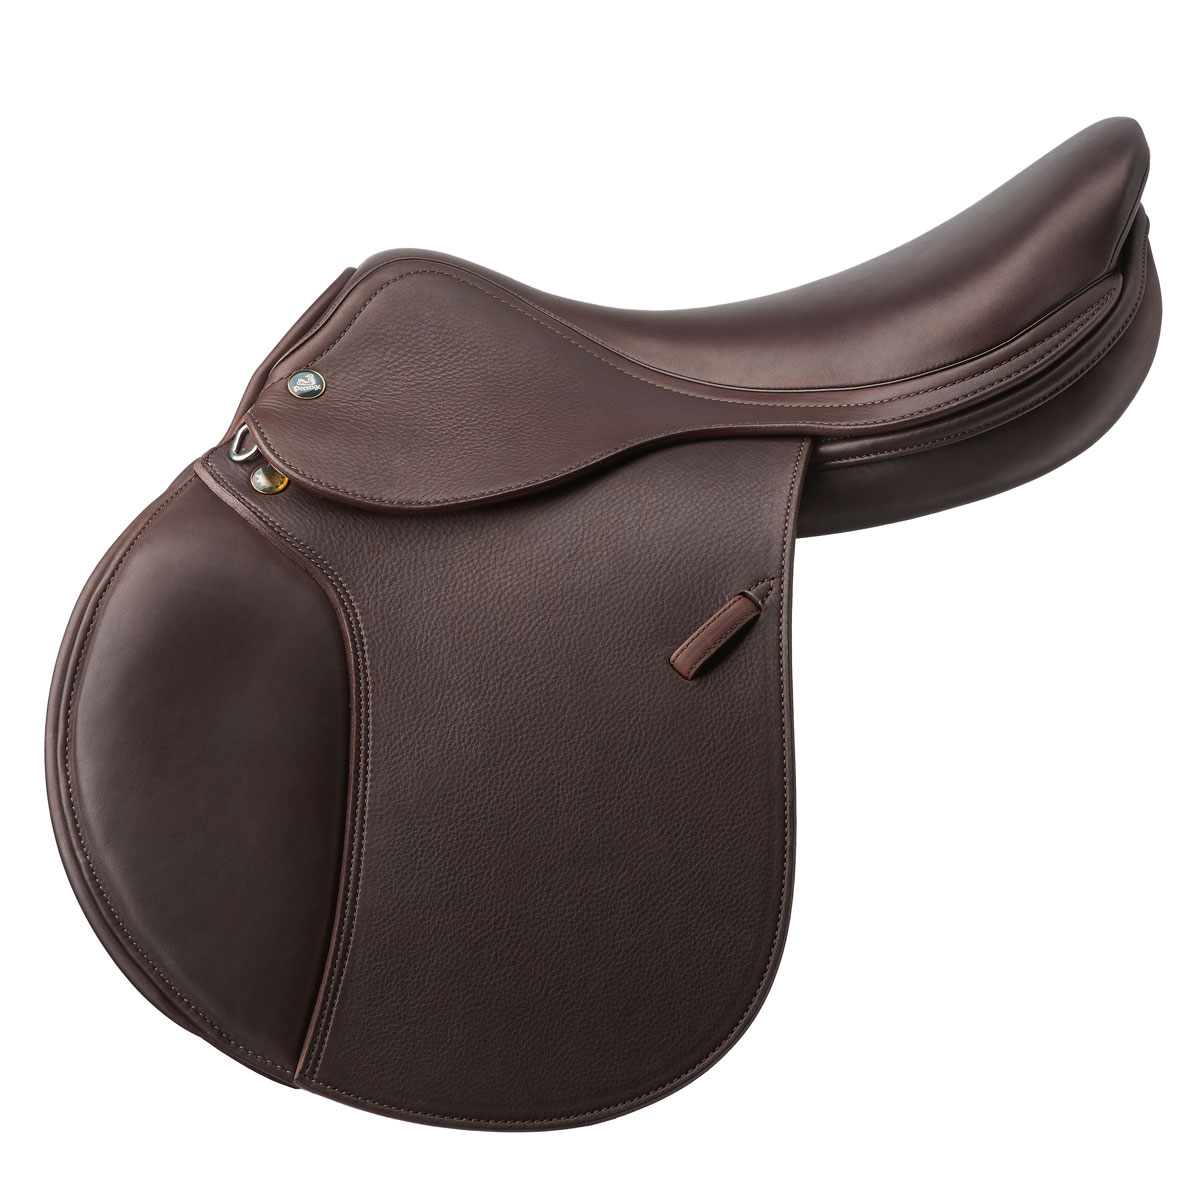 Prestige Bellagio Close Contact Saddle- Clearance!